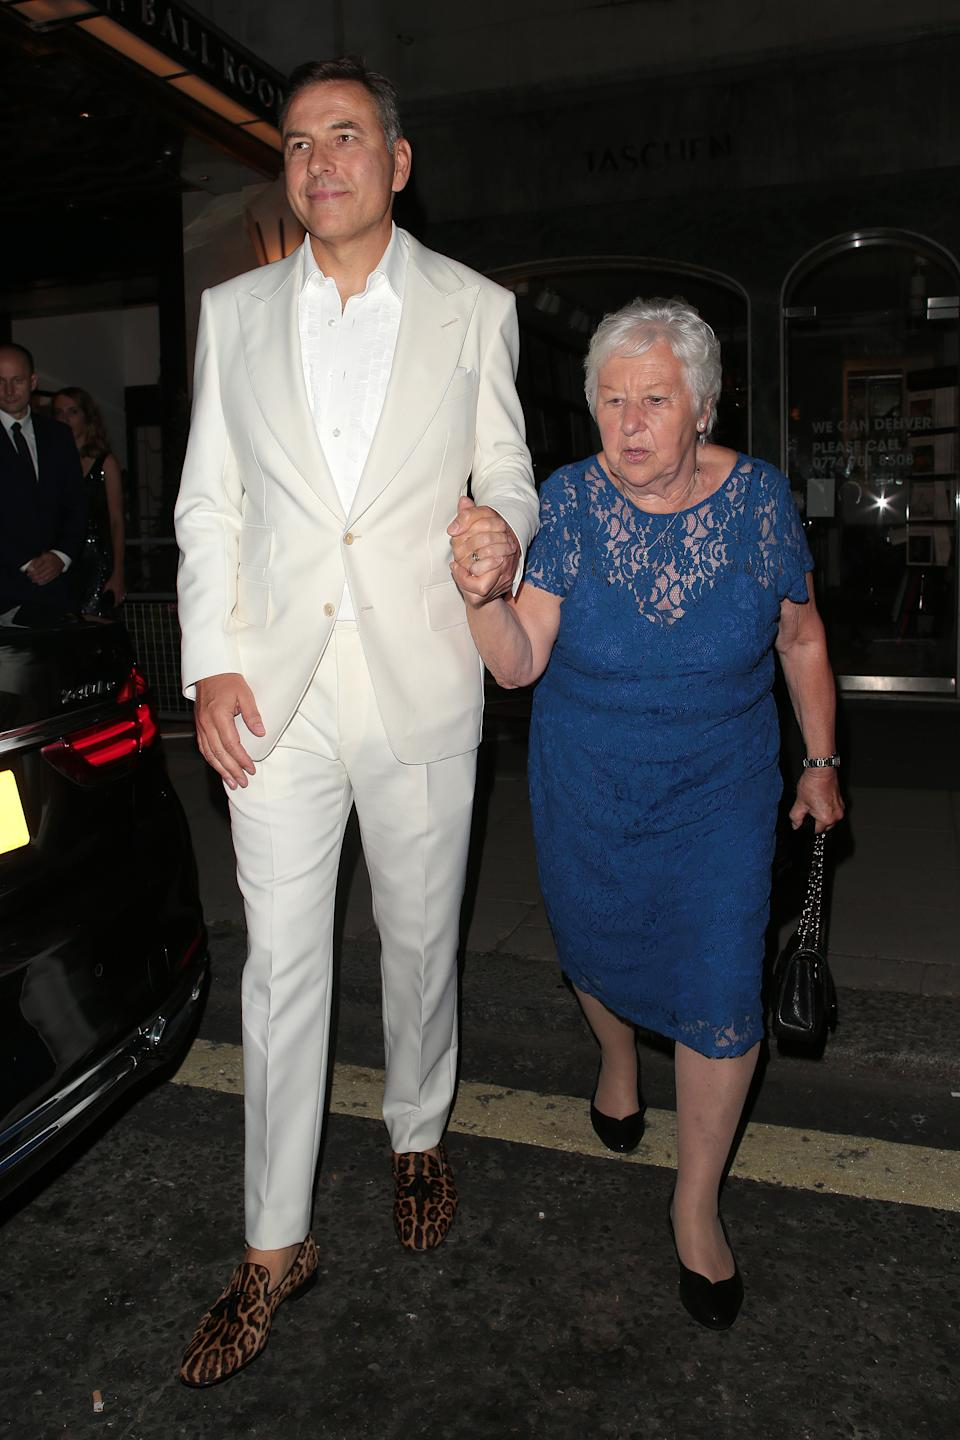 David Walliams wears a white suit to celebrate his 50th birthday party at Claridge's hotel with mum Kathleen Williams in Mayfair on September 04, 2021 in London, England. (Photo by Ricky Vigil/GC Images)